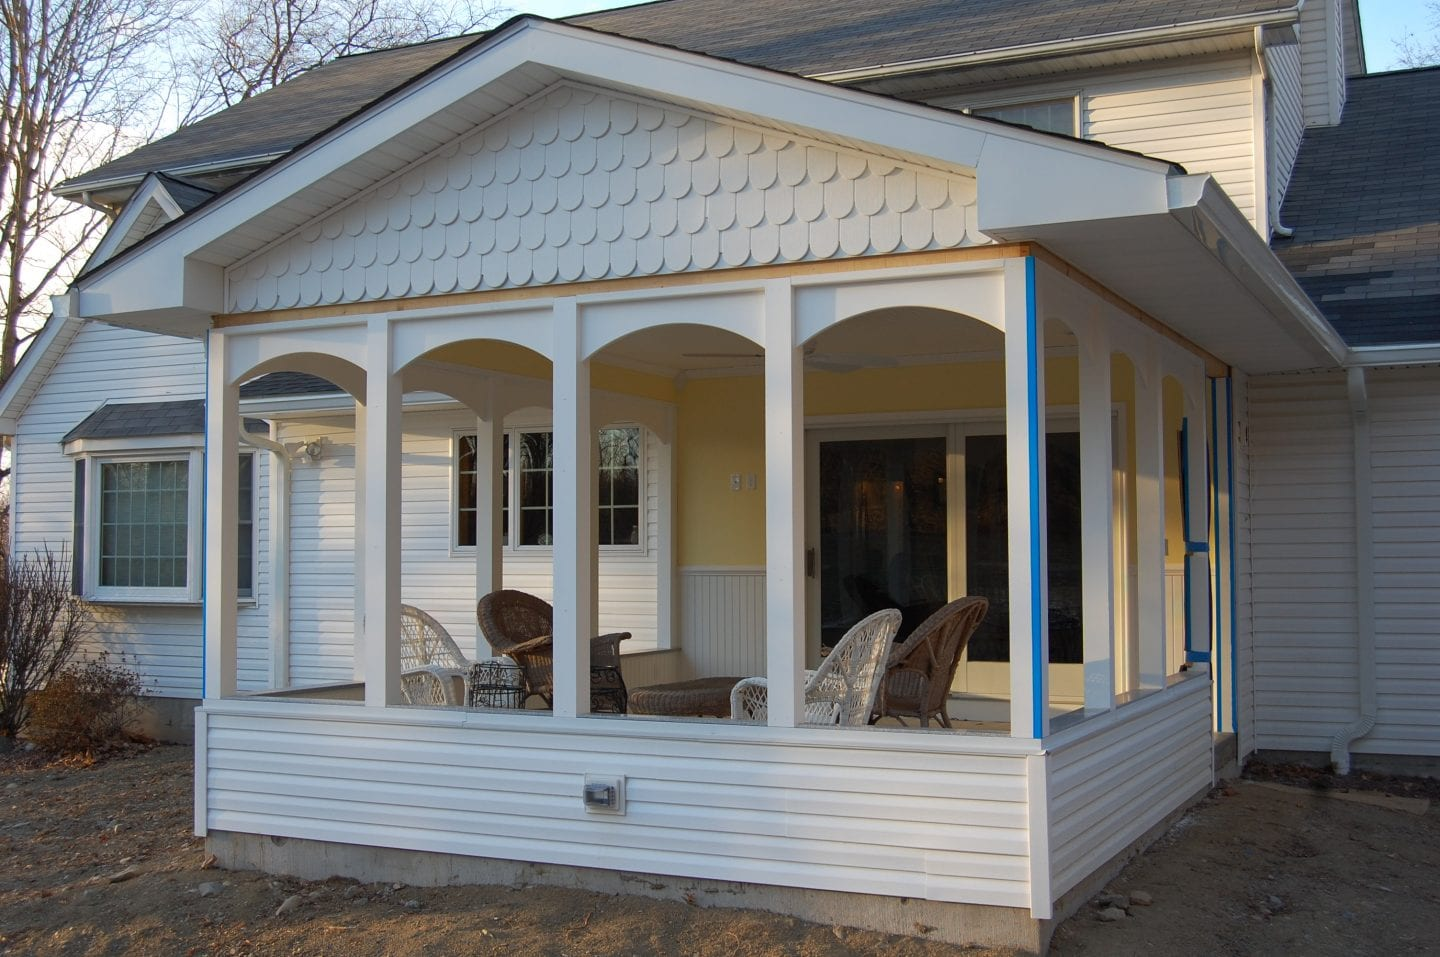 Porch Installer in Dutchess County, NY - DBS Remodel